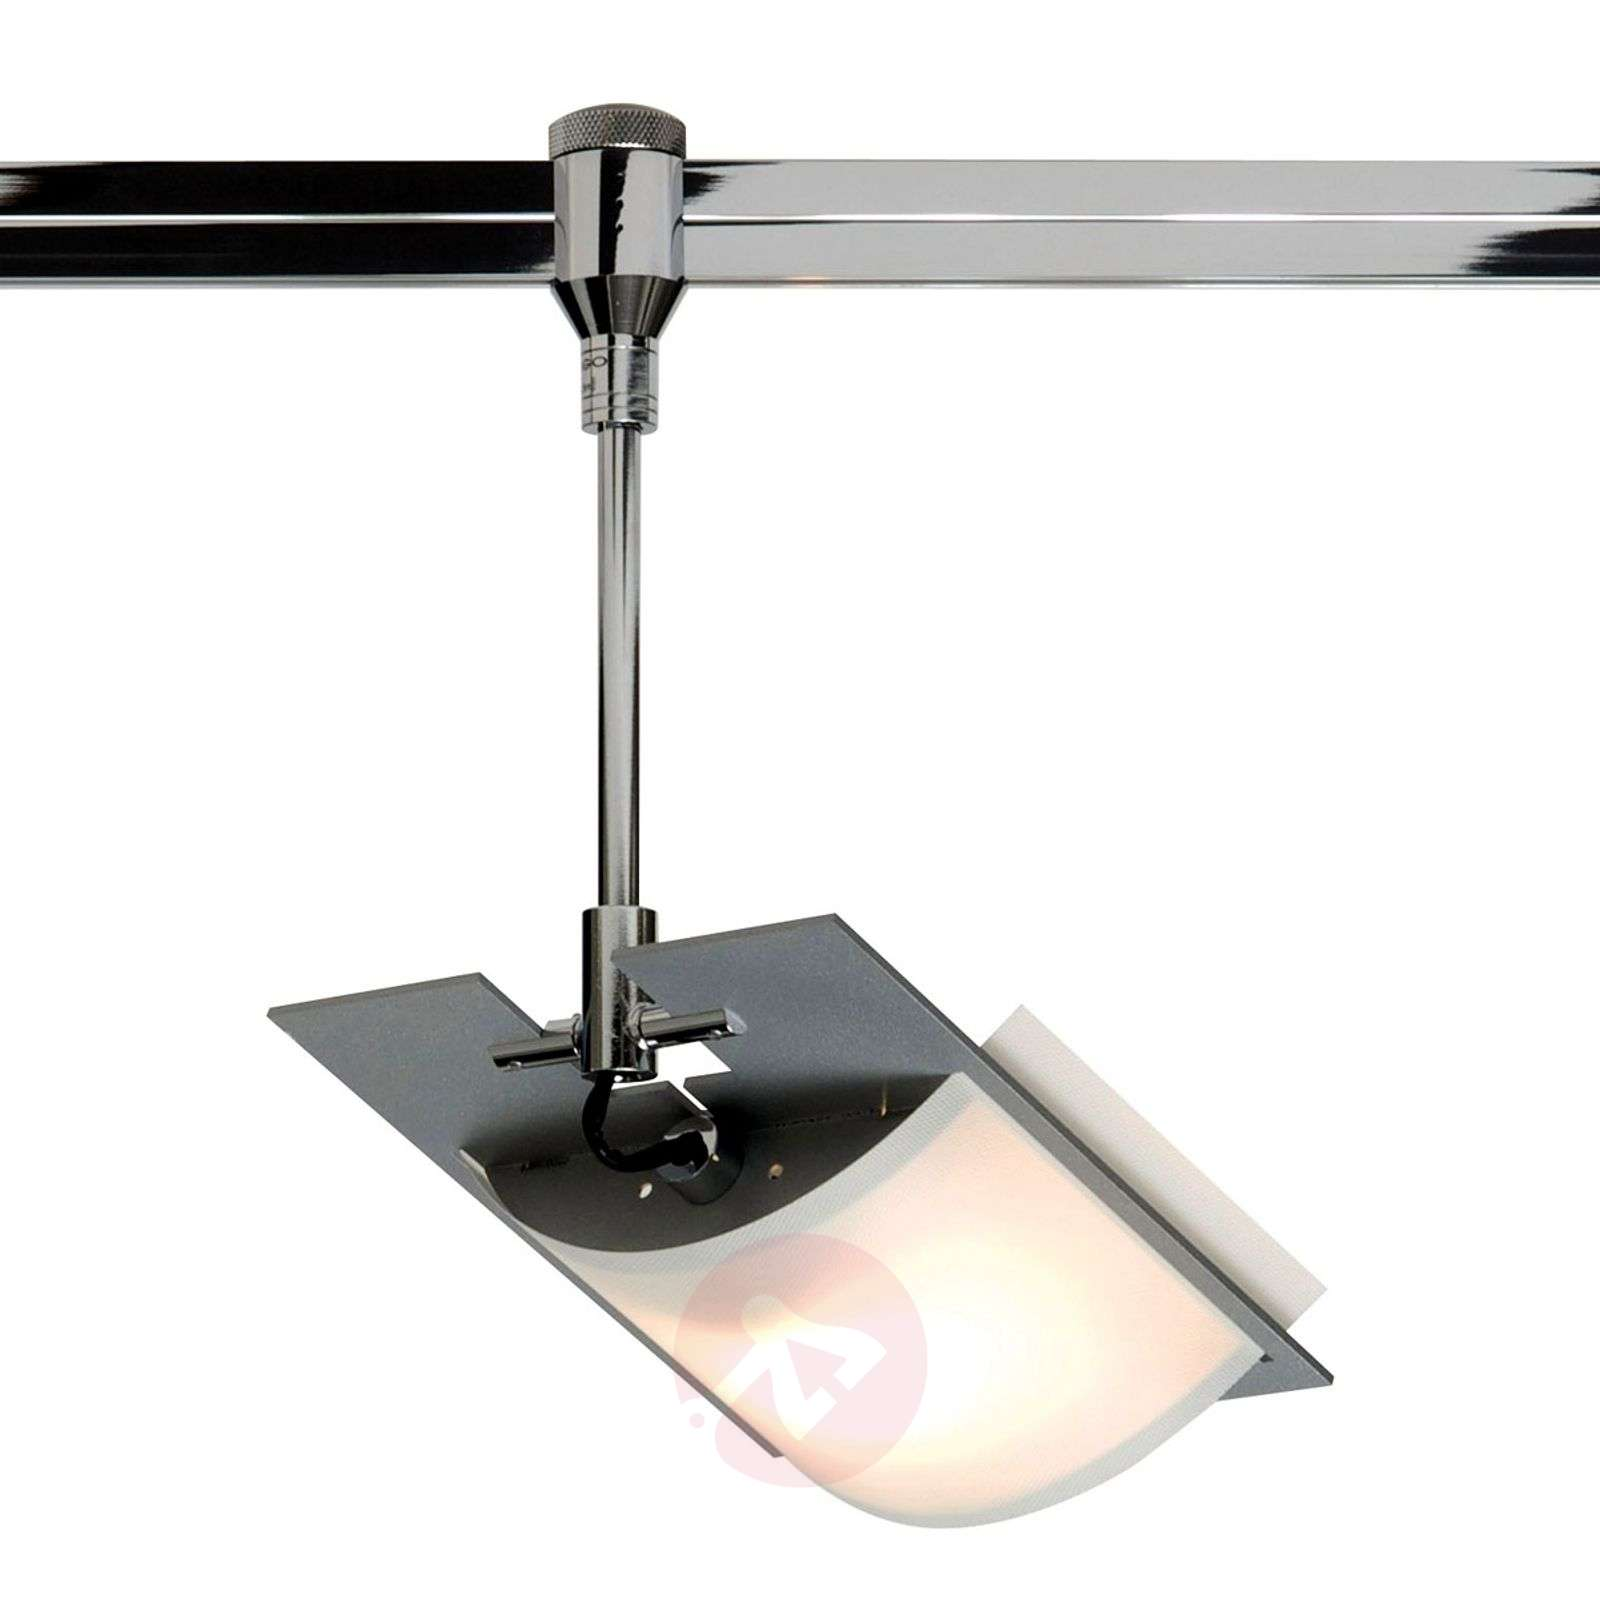 Lamp HIGH FLIGH voor CHECK-IN, 1-fase systeem-7250259X-01